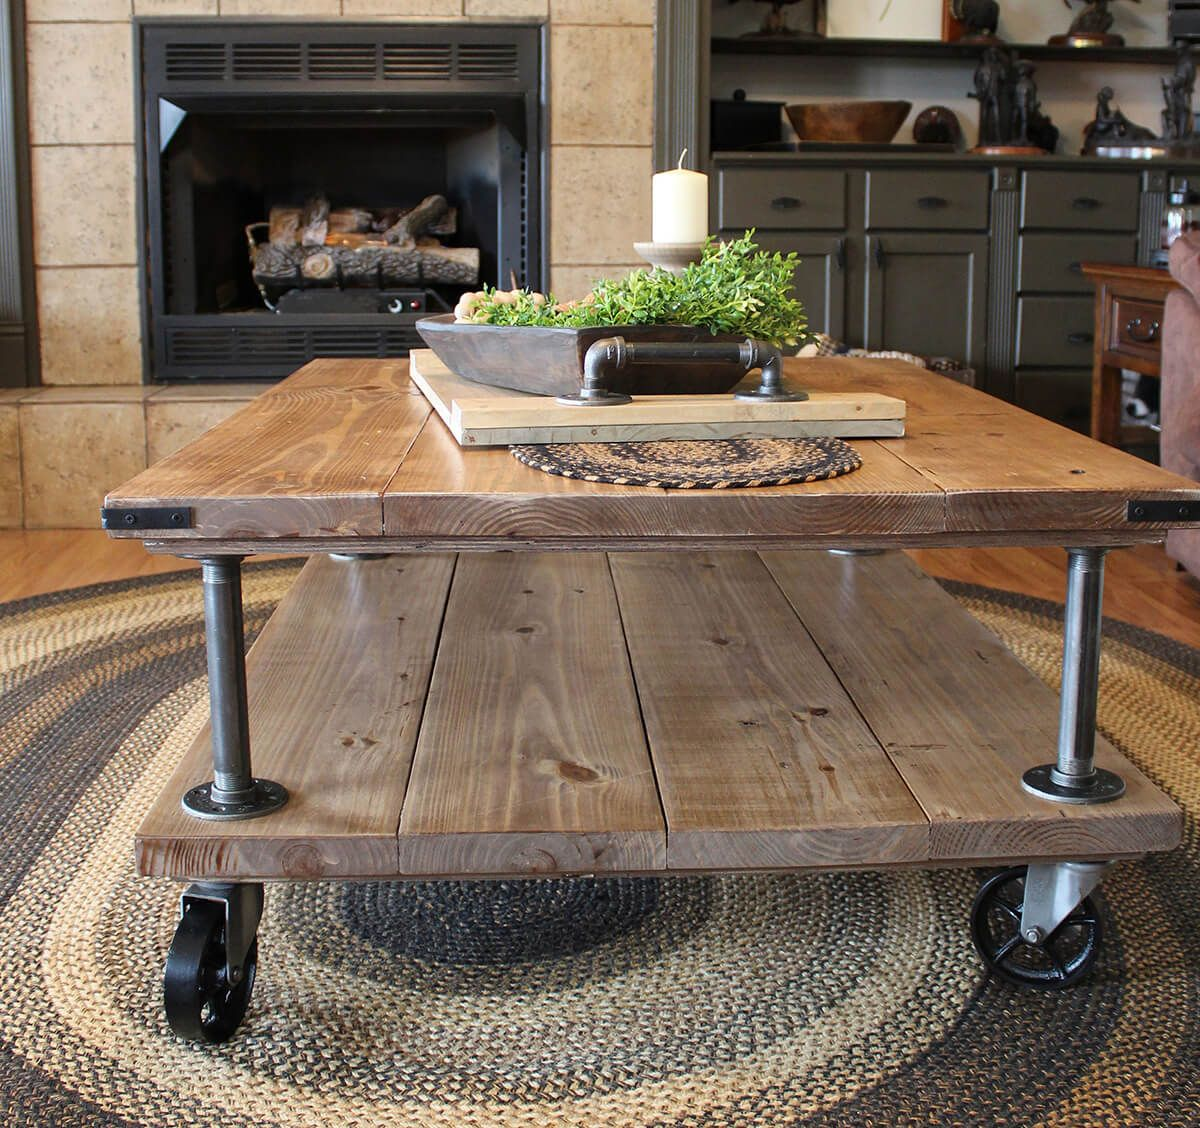 36 Beautiful Coffee Tables For All Living Room Styles Farmhouse Coffee Table Decor Coffee Table Farmhouse Decorating Coffee Tables